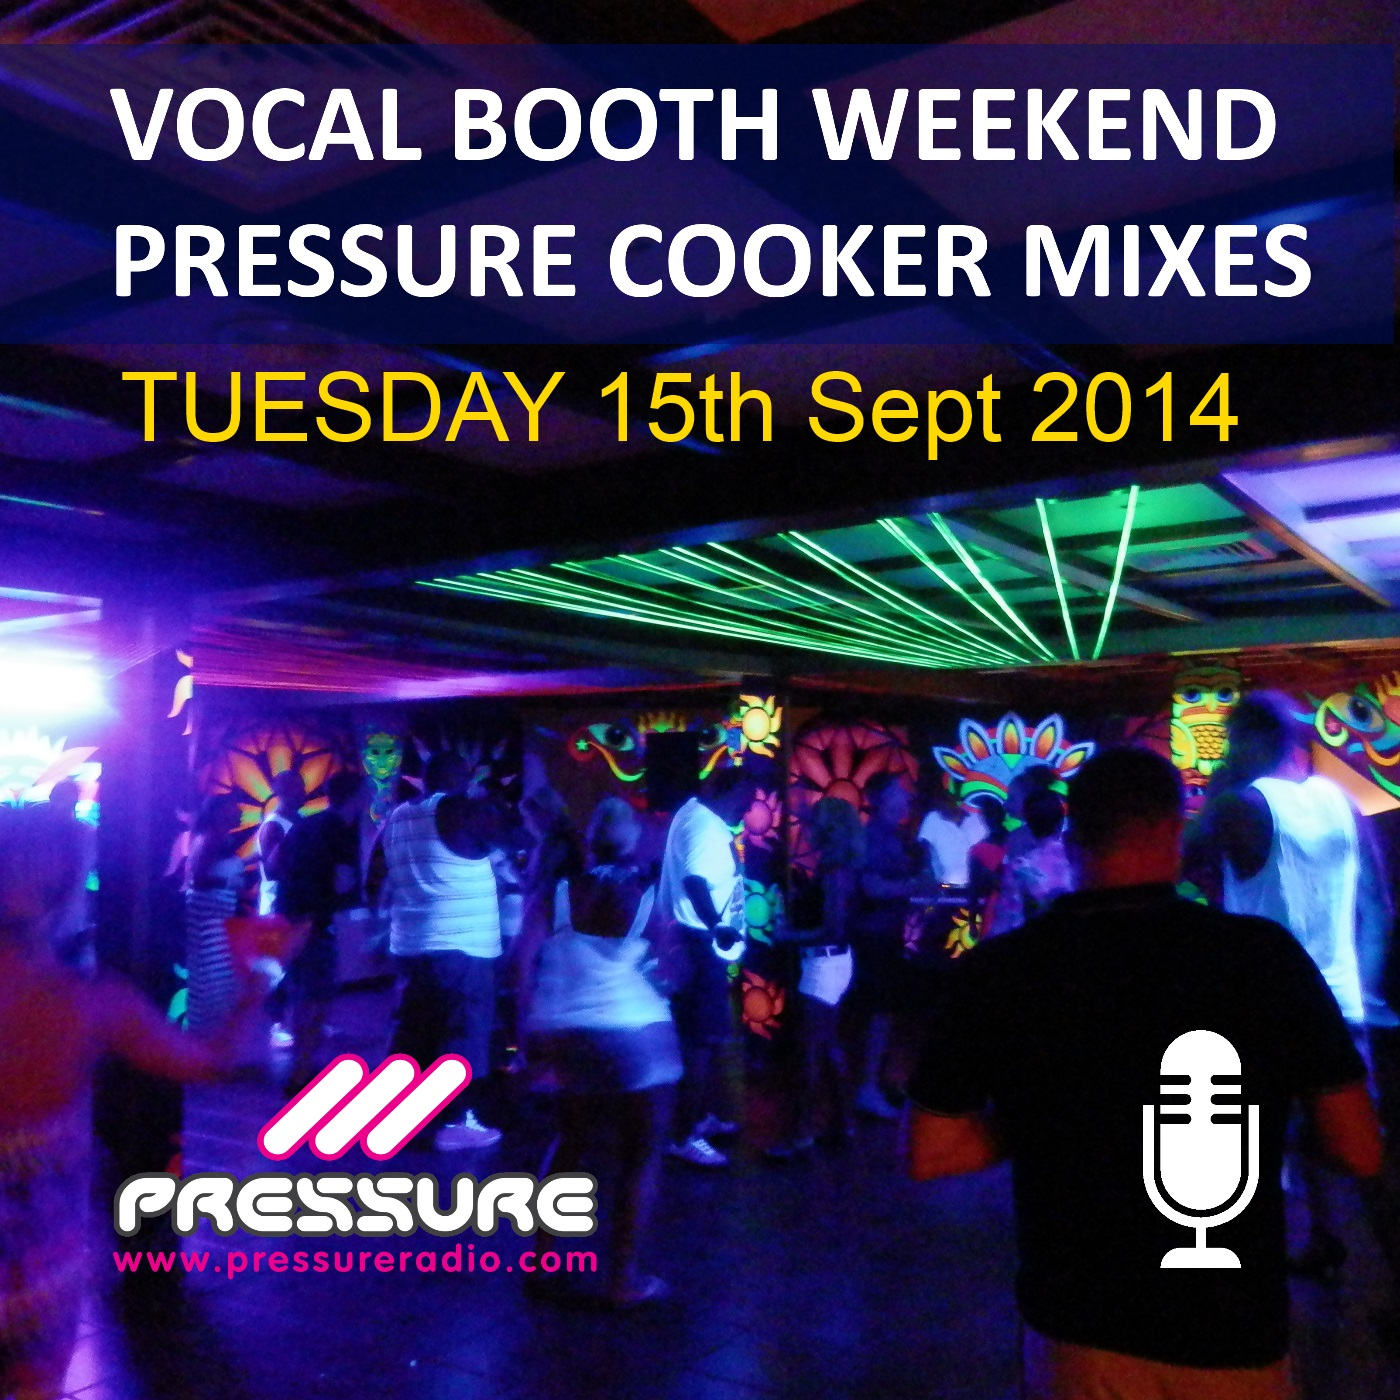 Dylan pressure cooker vocal booth weekend 2014 mix for Vocal house music 2015